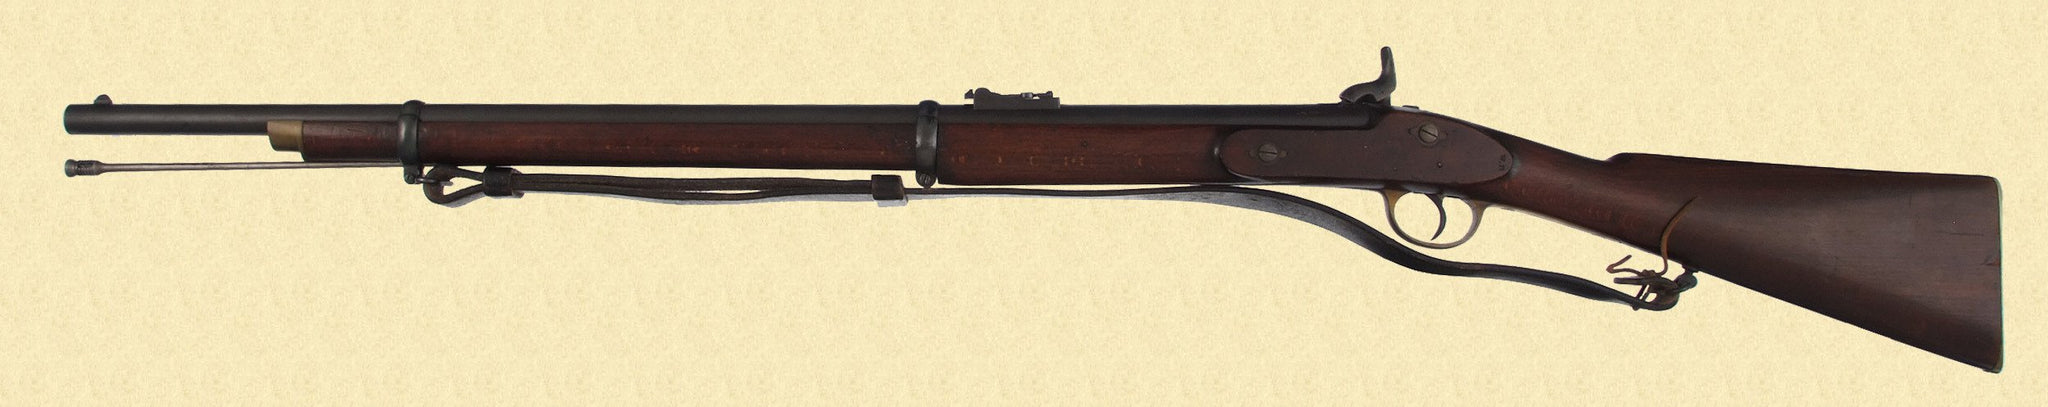 ENGLISH PATTERN 1860 SHORT RIFLE